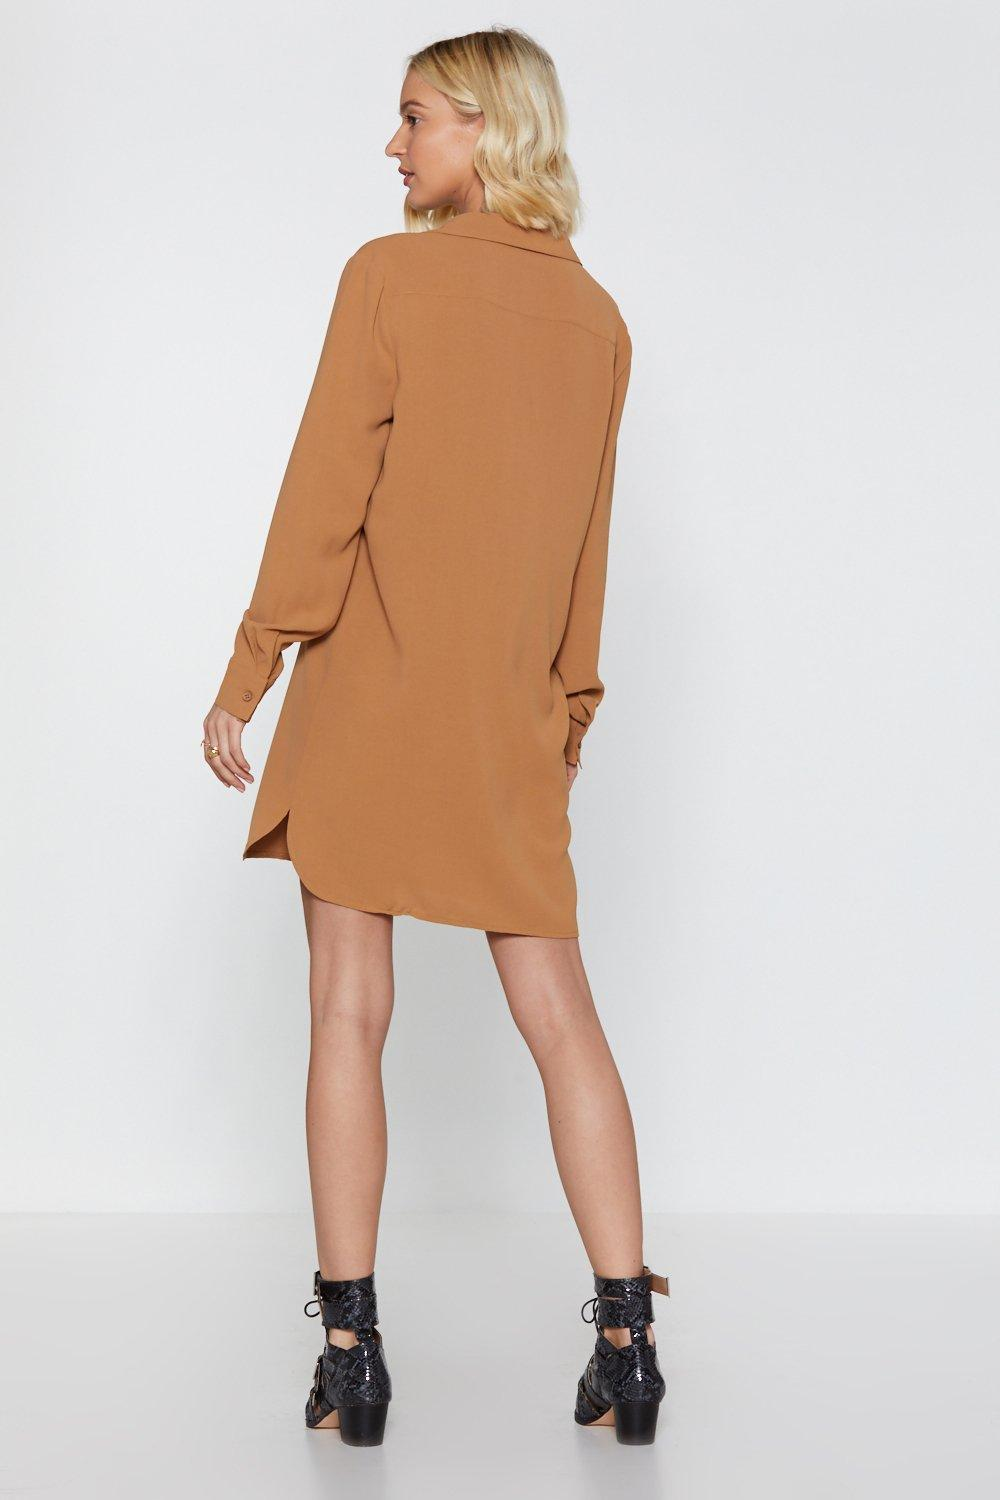 Take The Shirt Cut Linen Shirt Dress Shop Clothes At Nasty Gal